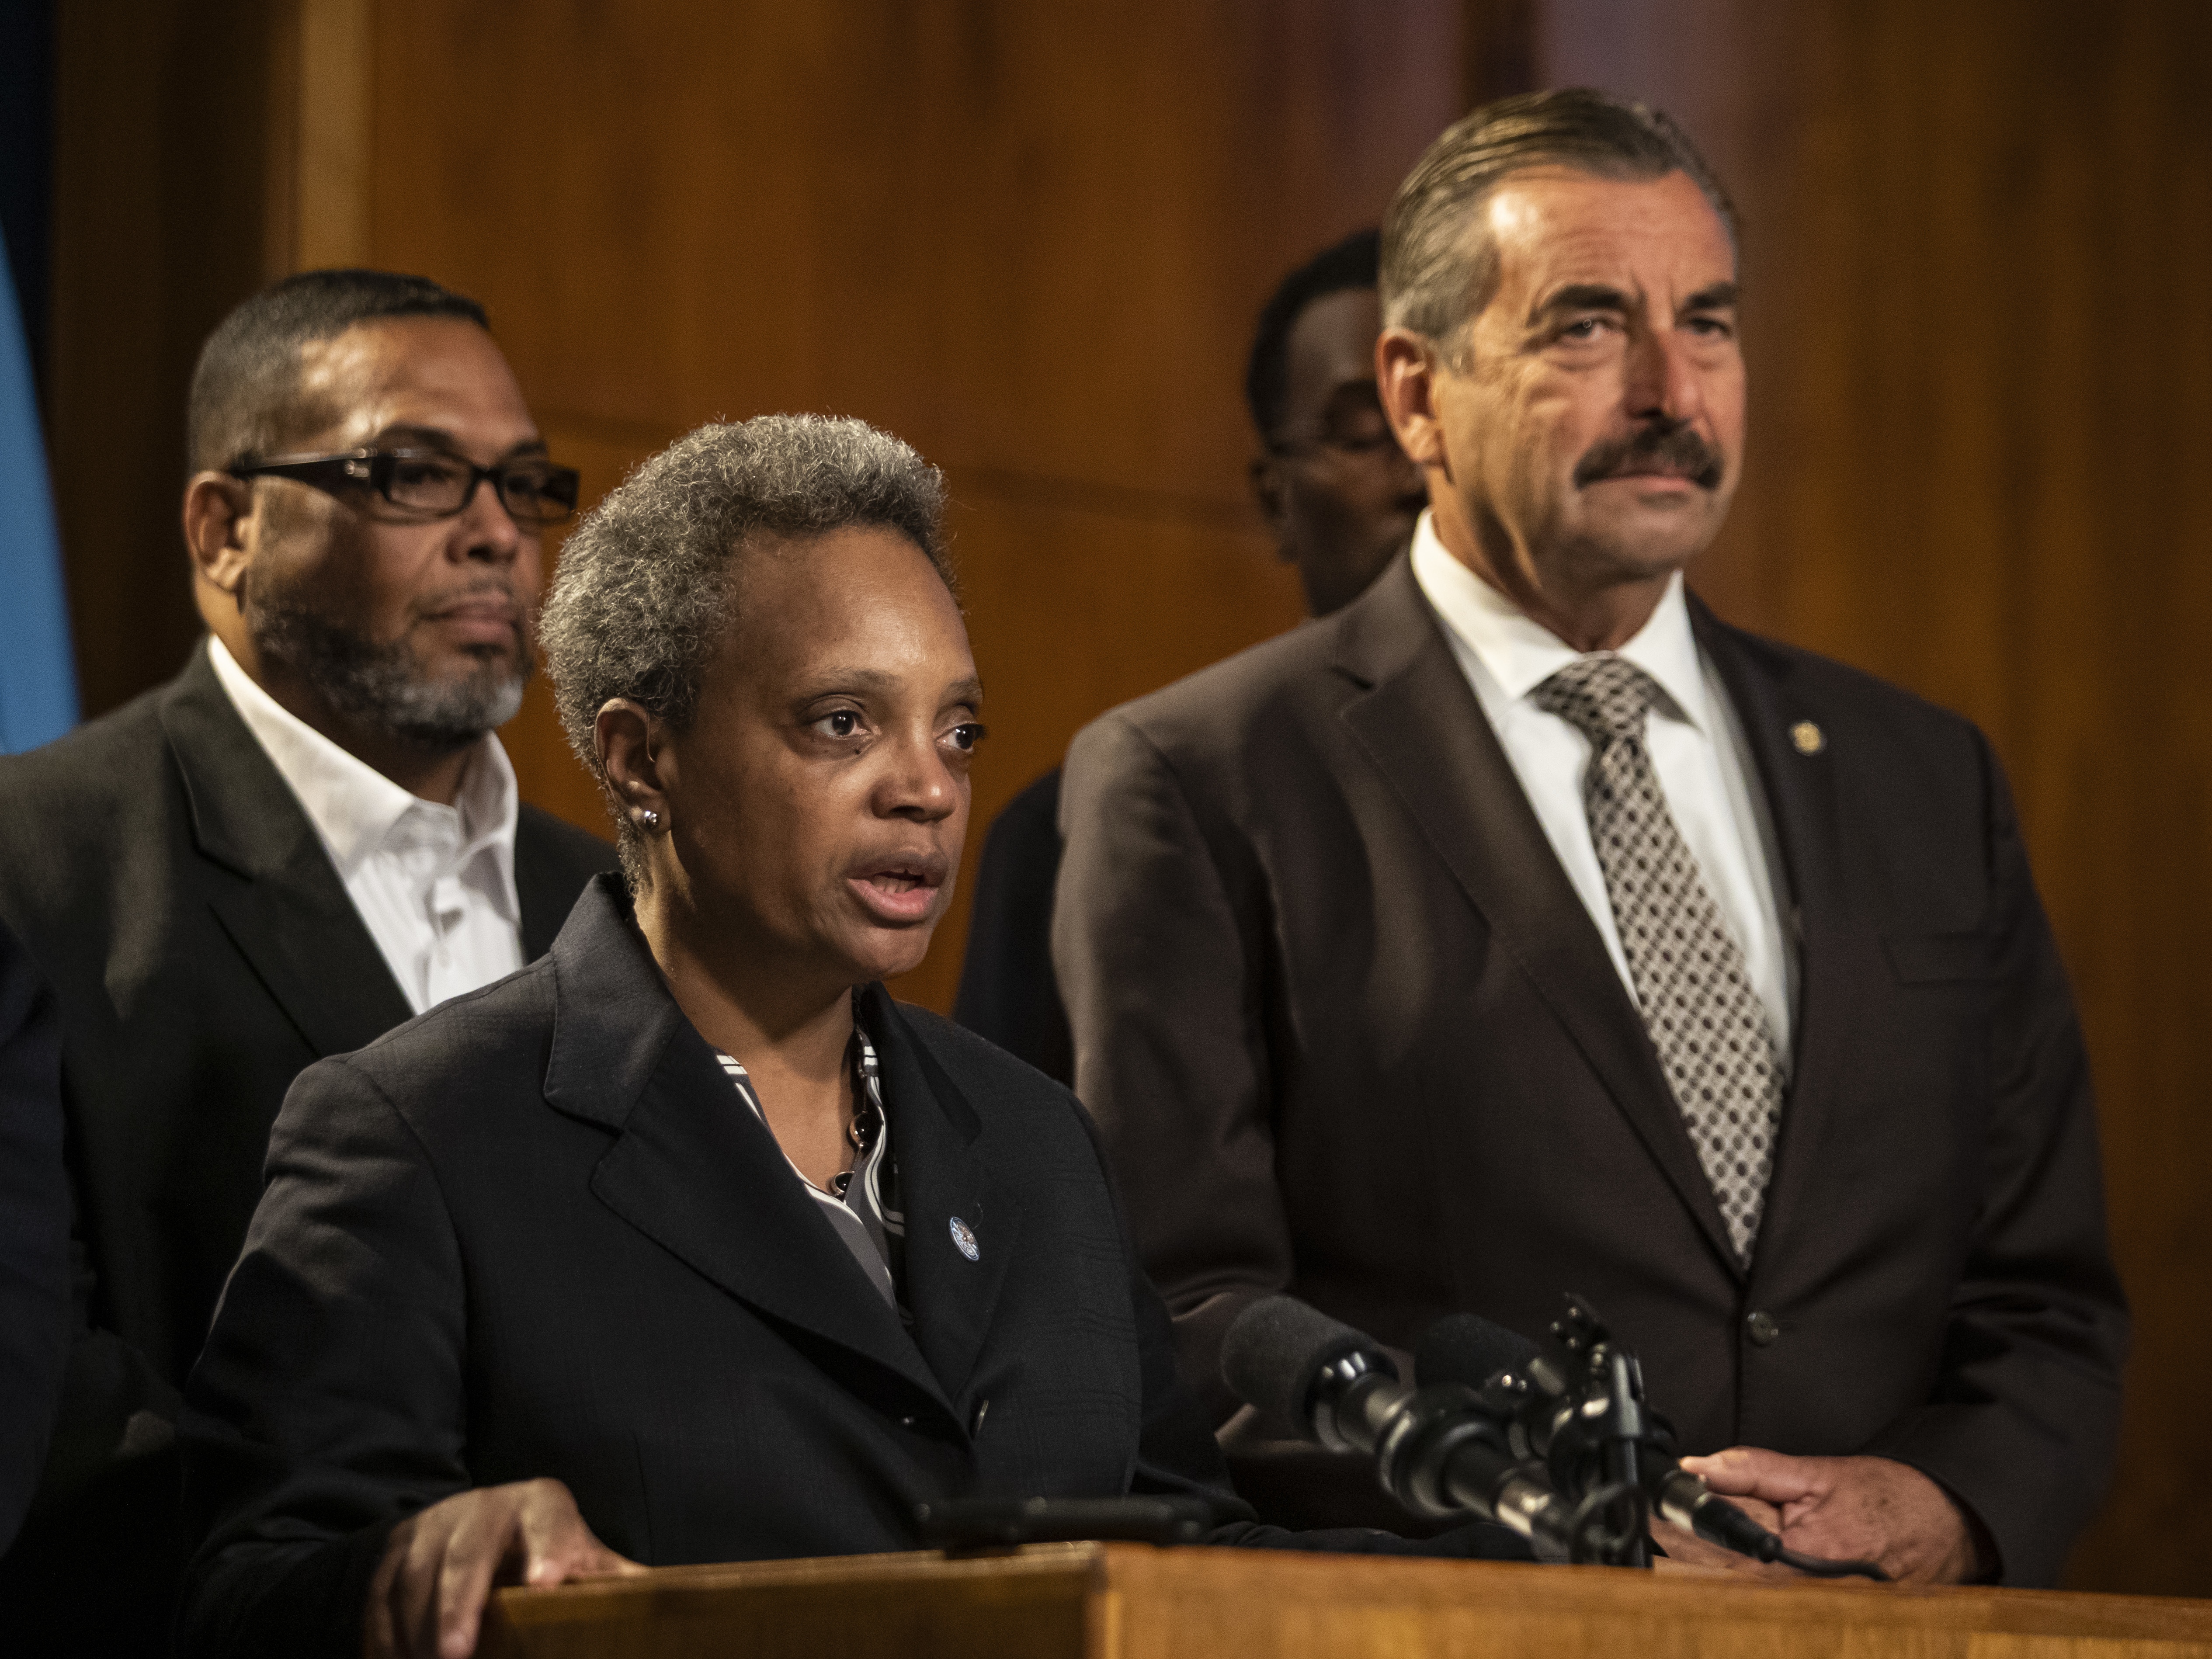 Mayor Lori Lightfoot speaks during a press conference at City Hall, announcing former Los Angeles Police Chief Charlie Beck (right) would serve as Chicago's interim police superintendent, Friday morning, Nov. 8, 2019.